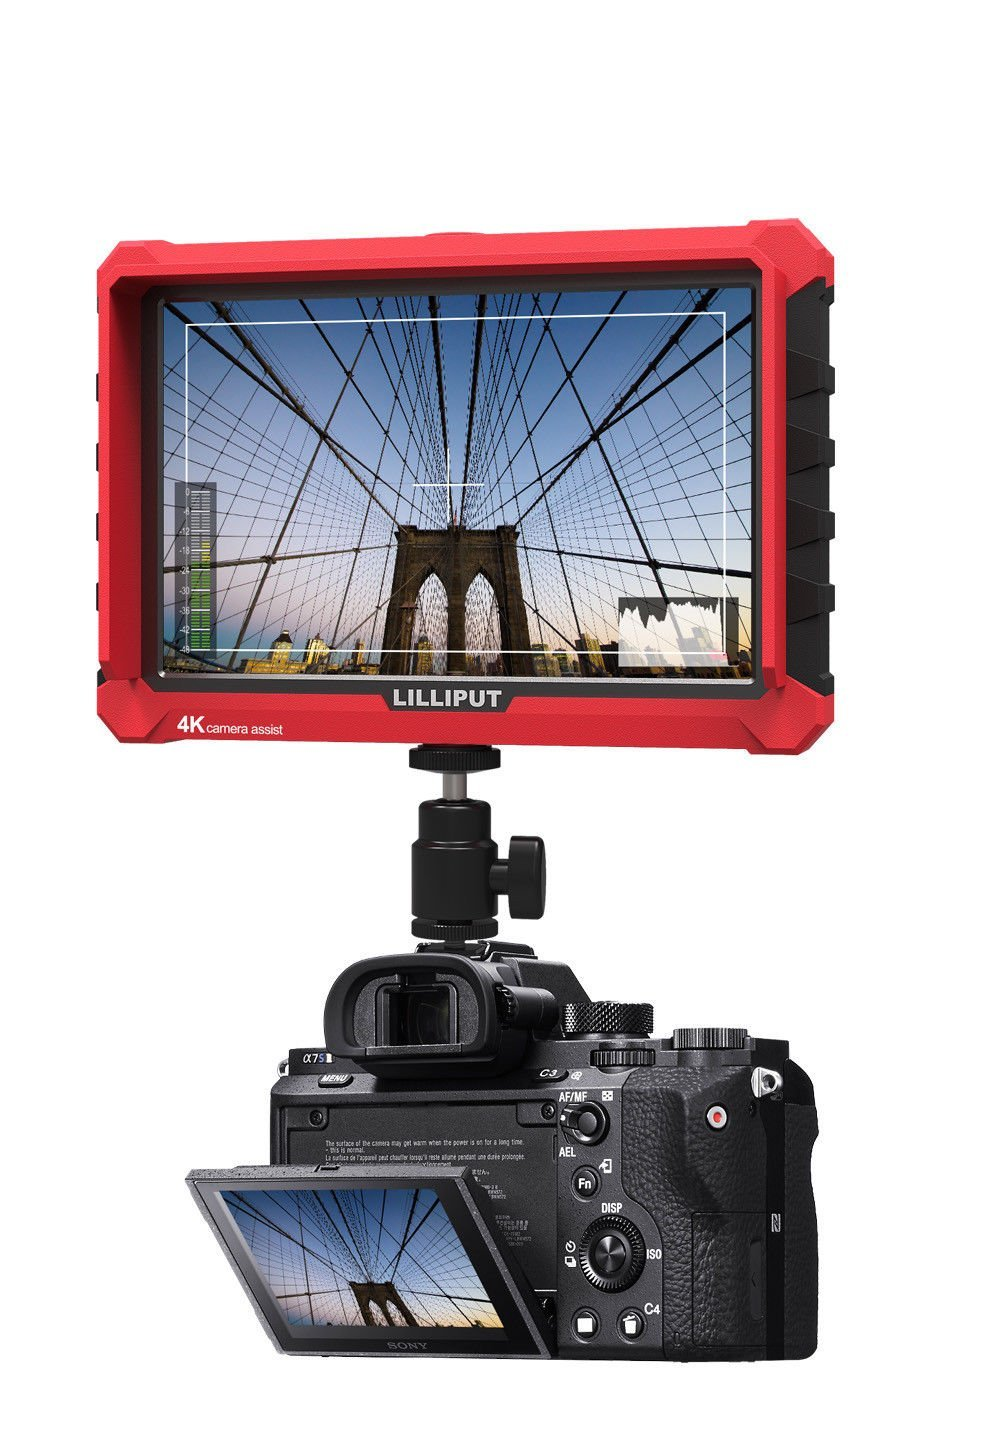 LILLIPUT A7S 7'' 1920x1200 IPS Screen Camera Field Monitor 4K 1.4 HDMI Input output Video For DSLR Mirrorless Camera SONY A7S II A6500 Panasonic GH5 Canon 5D Mark IV by LILLIPUT OFFICIAL SELLER VIVITEQ